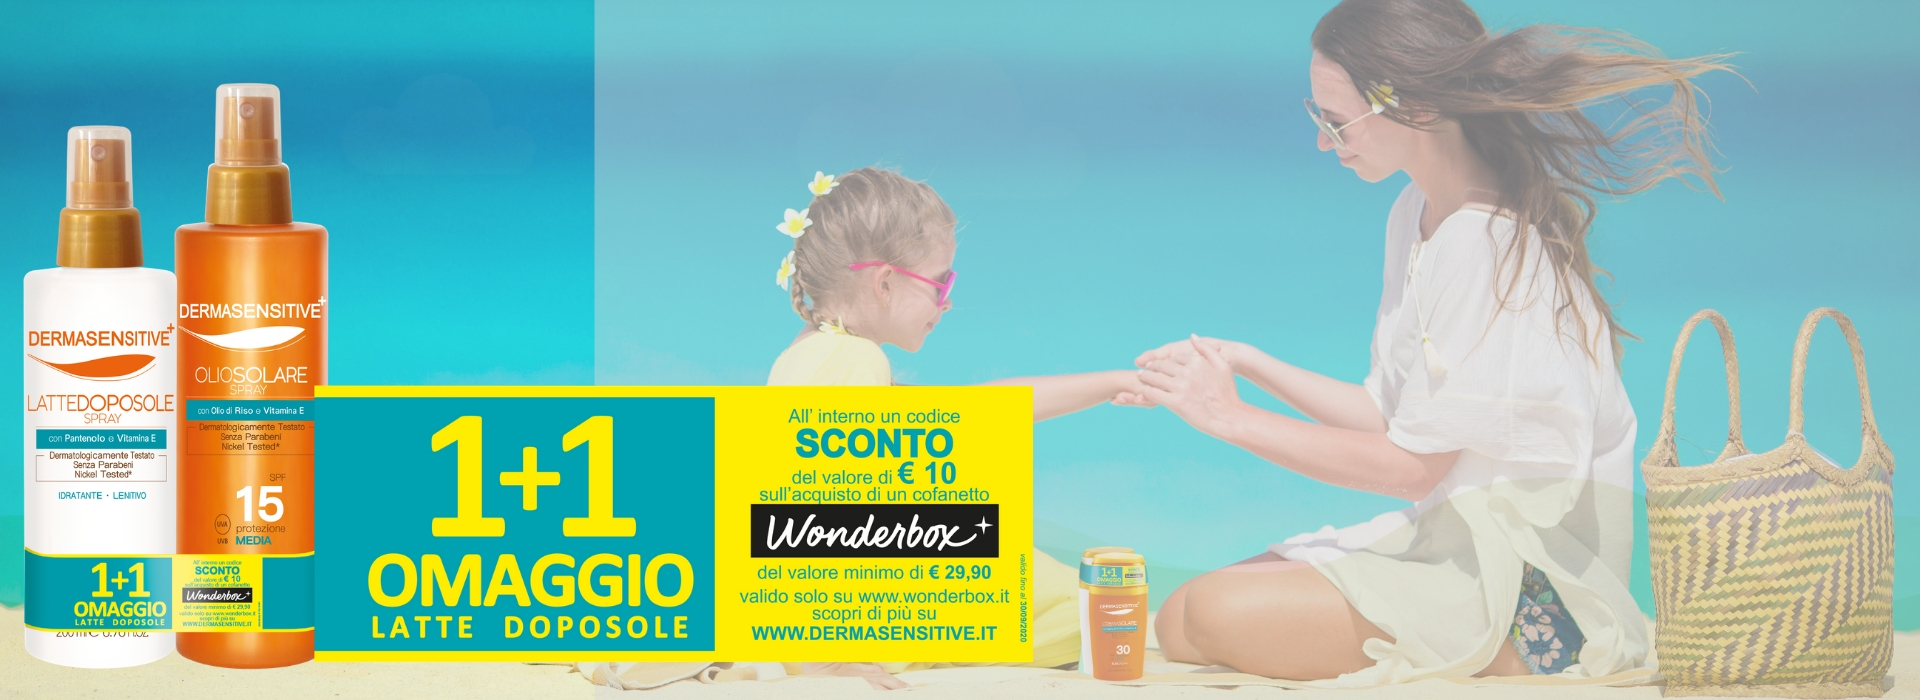 Acquista i solari Dermasensitive: sconto del 10% su pacchetto Week end Wonder Box